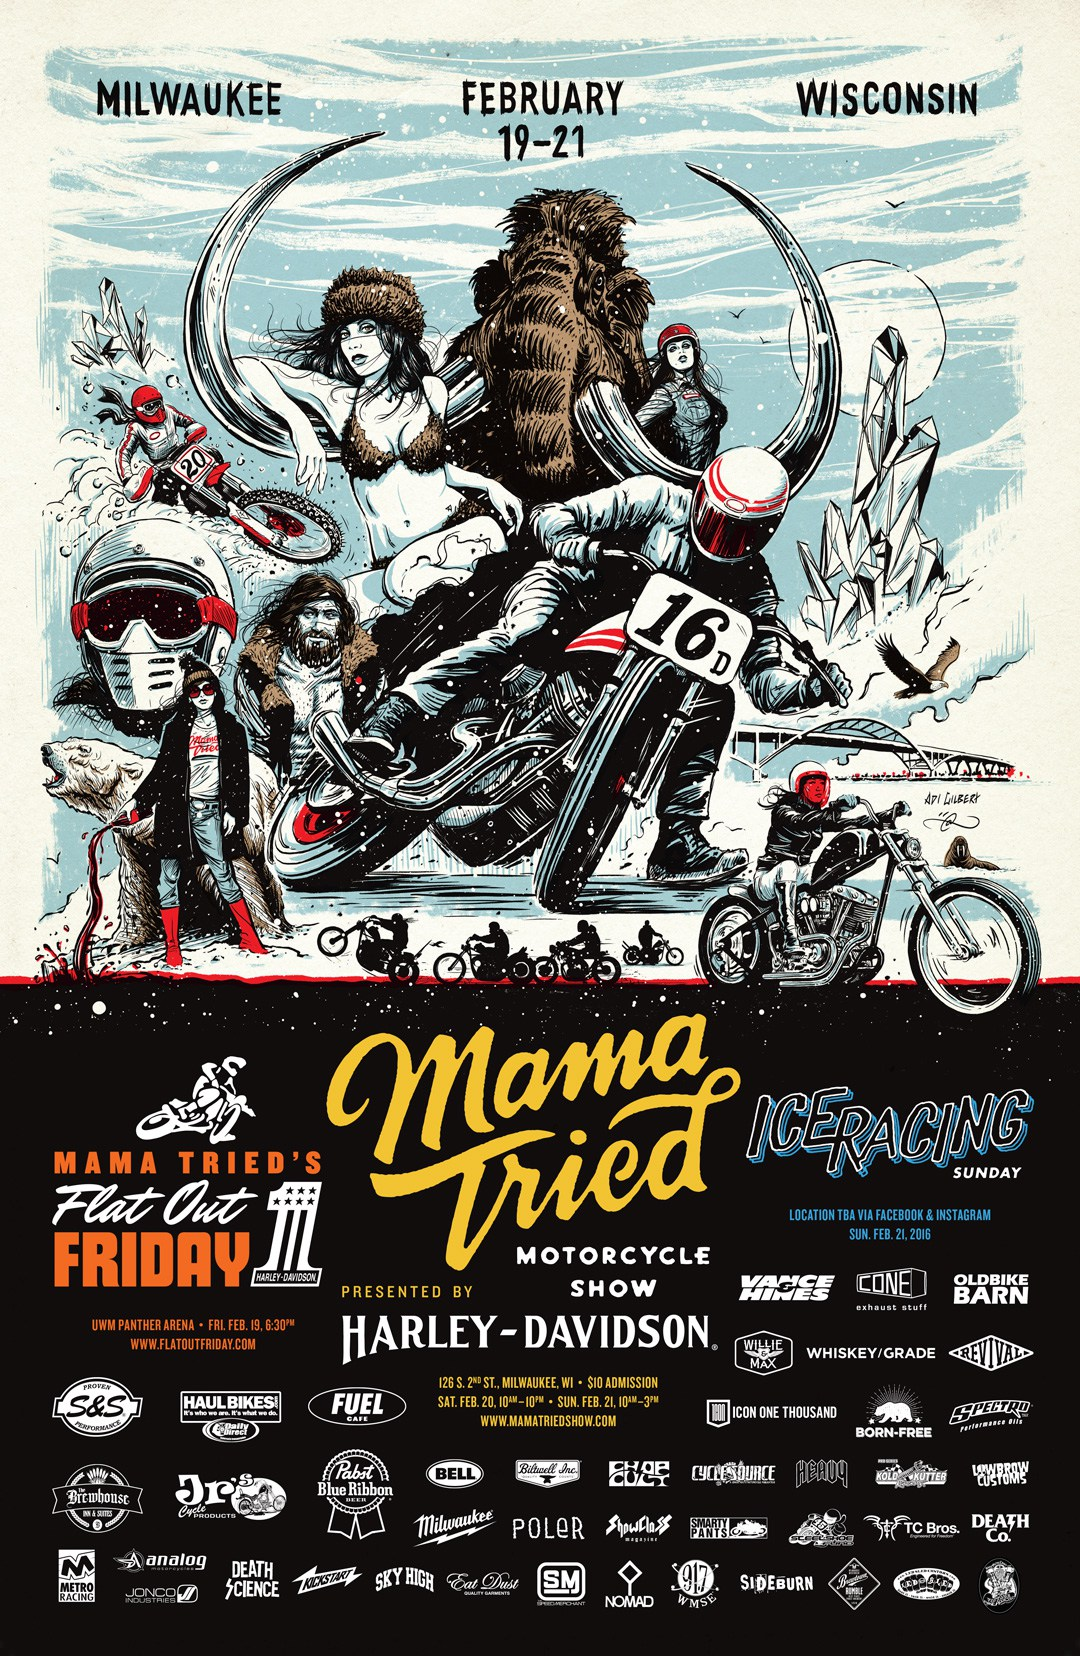 Mama Tried Motorcycle Show Poster by Adi Gilbert